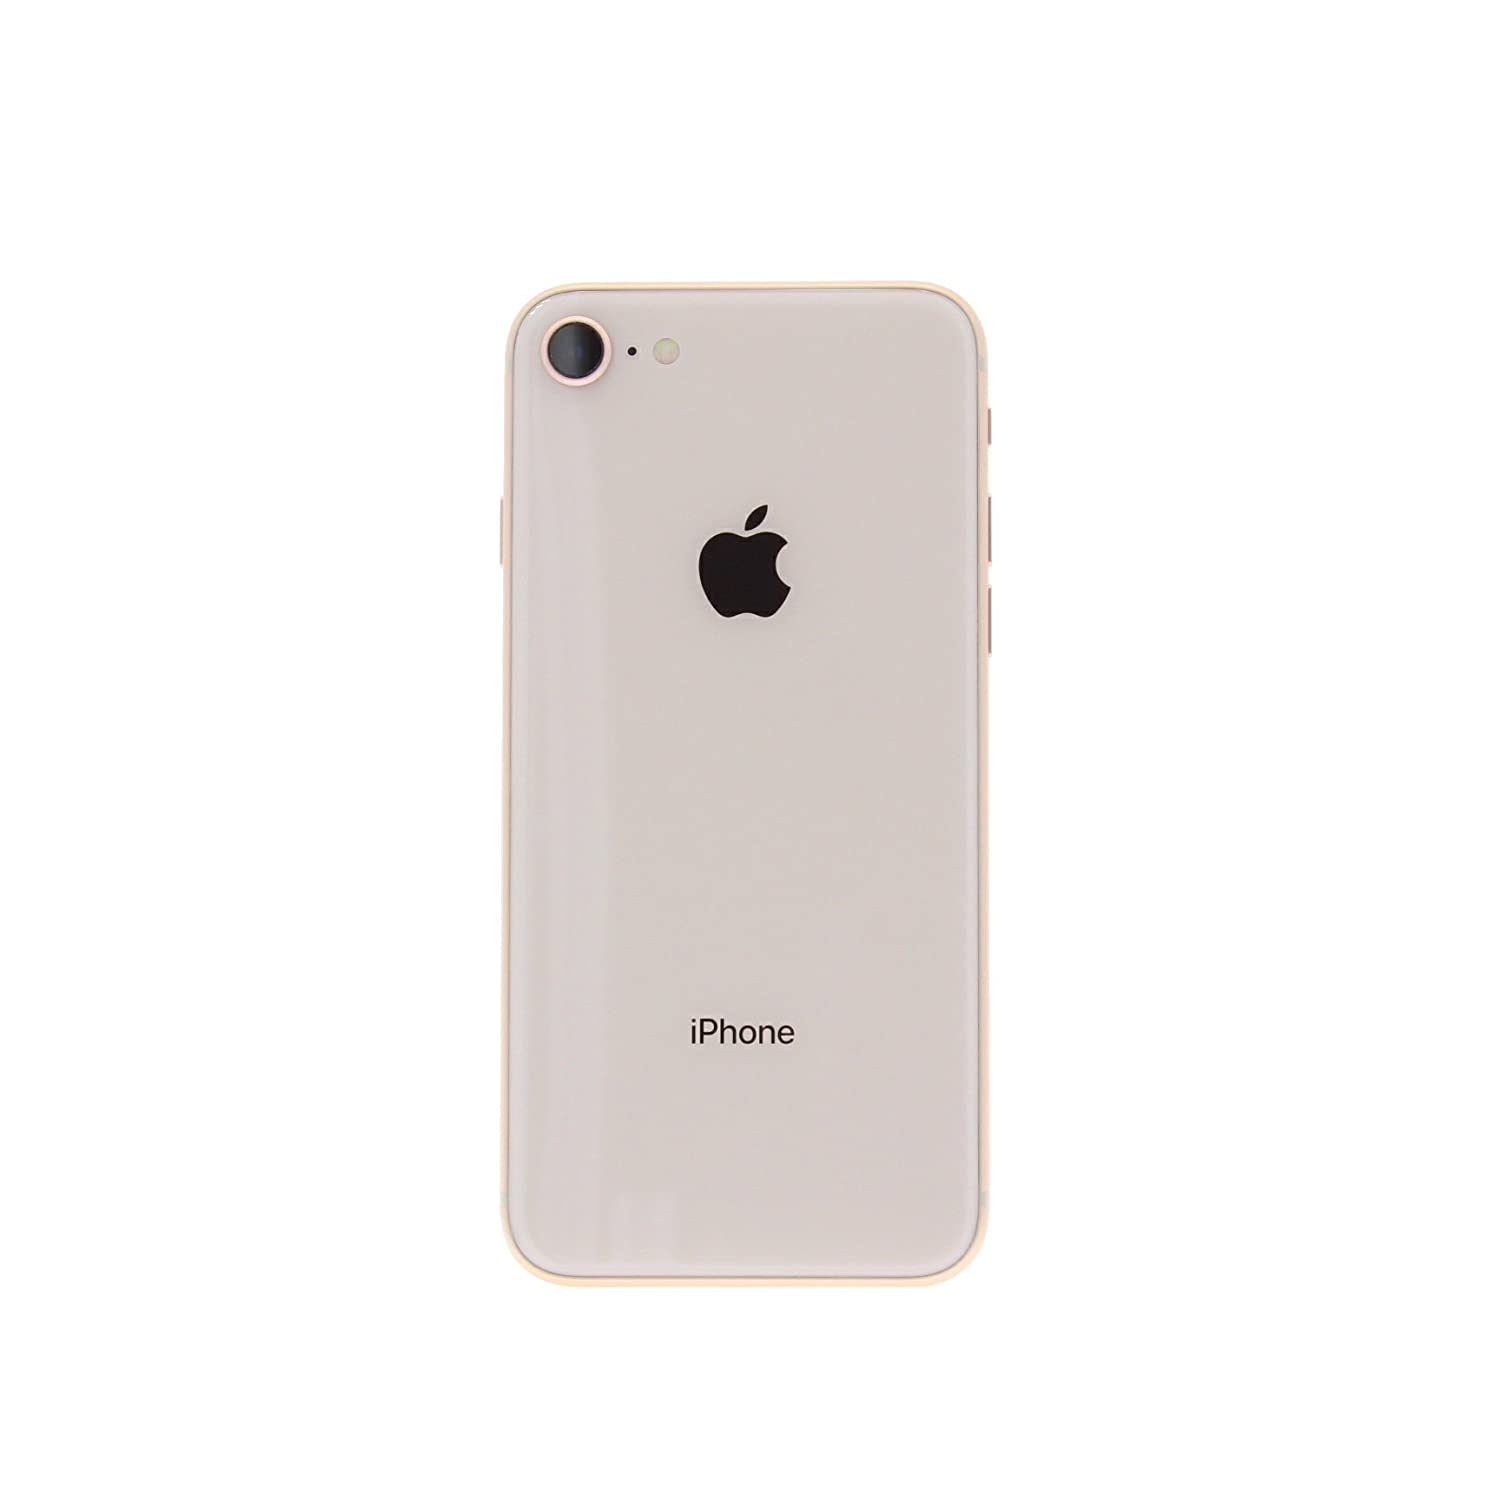 Apple Iphone 8 Gsm Unlocked 64gb Gold Refurbished 6 Refrubish Free Tempered Glass Cell Phones Accessories